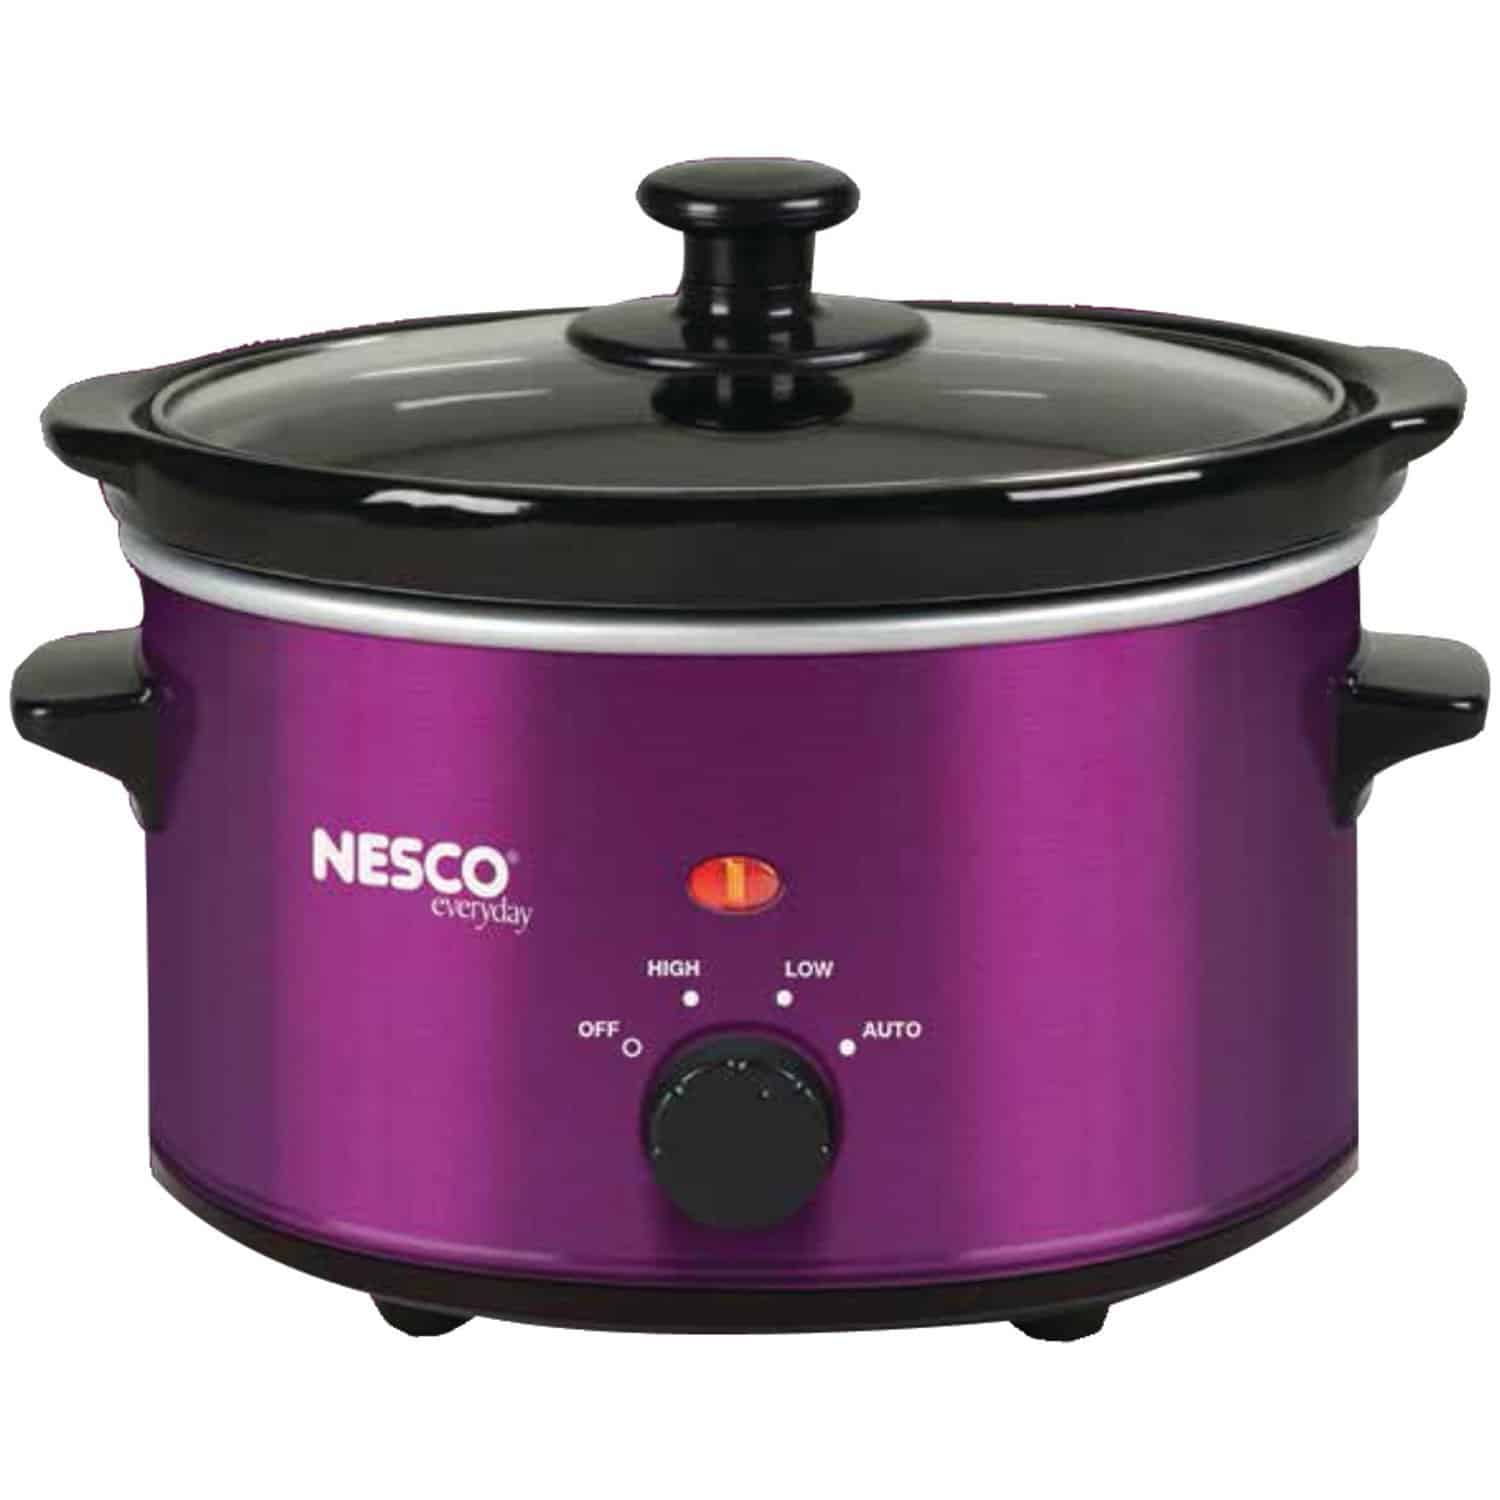 Violet small 1.5 quart slow cooker by Nesco